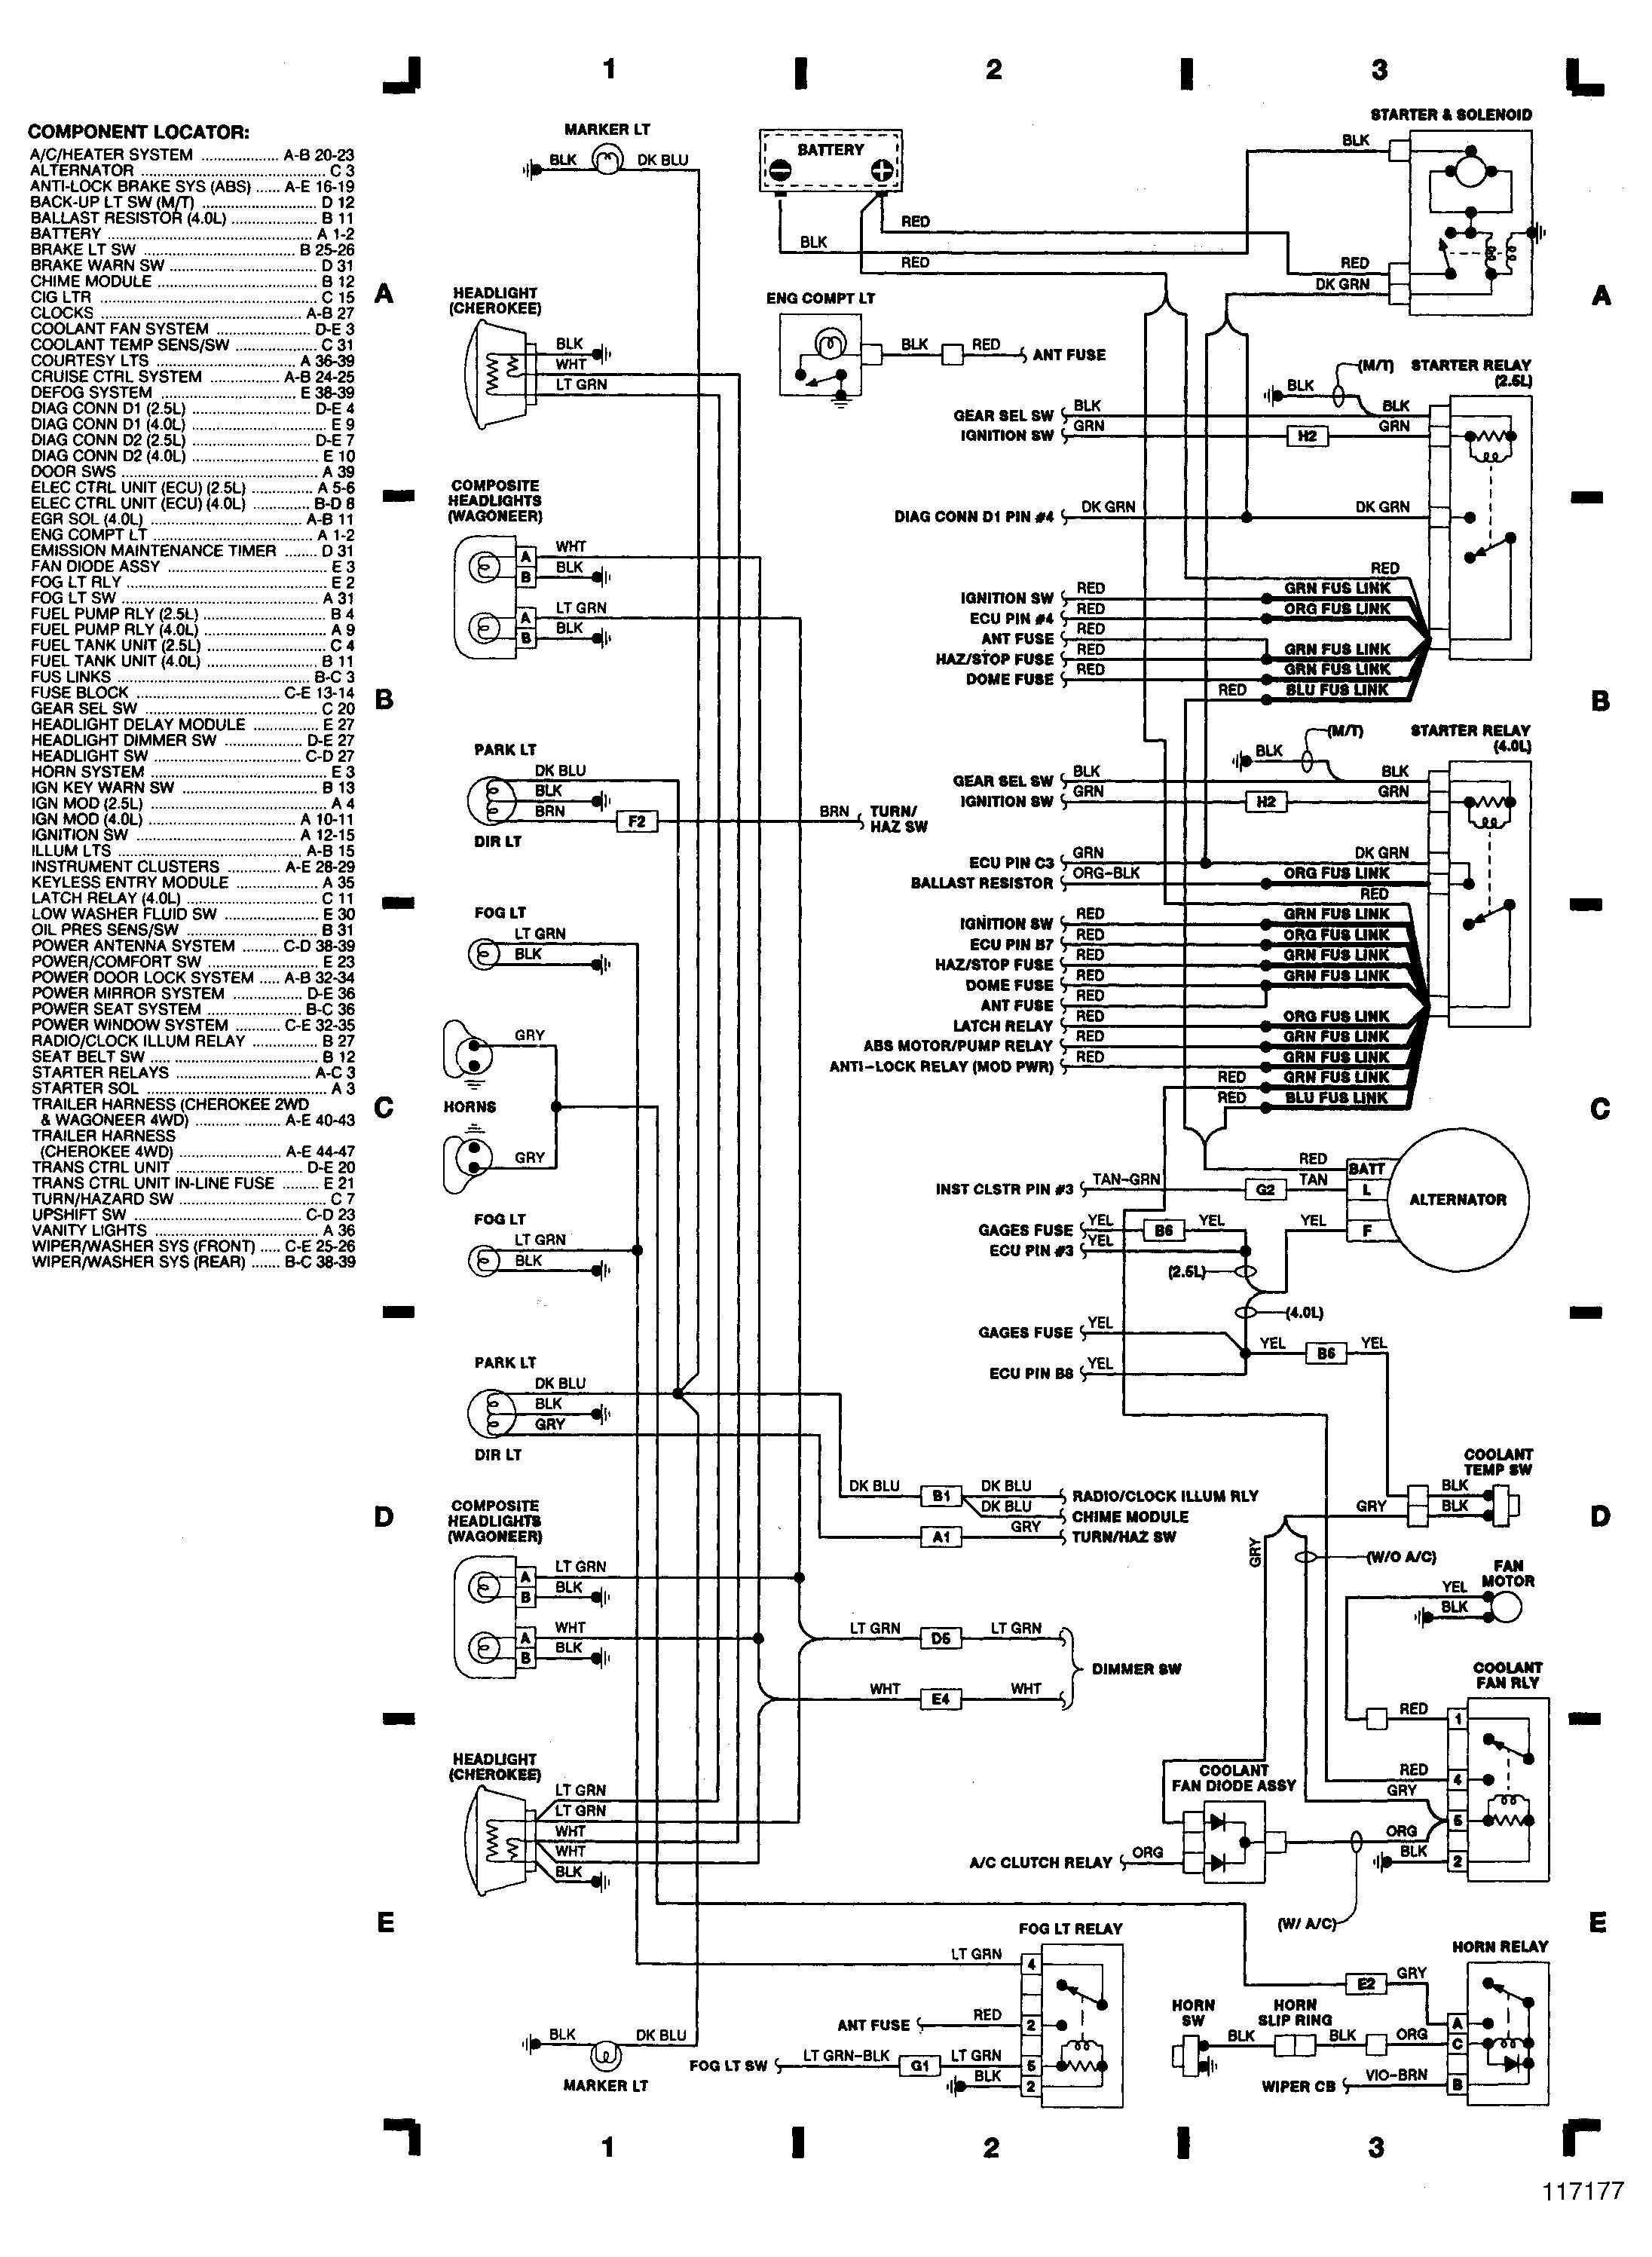 2004 Jeep Grand Cherokee Wiring Diagram Jeep Ignition Wiring Diagrams  Wiring Diagram Of 2004 Jeep Grand